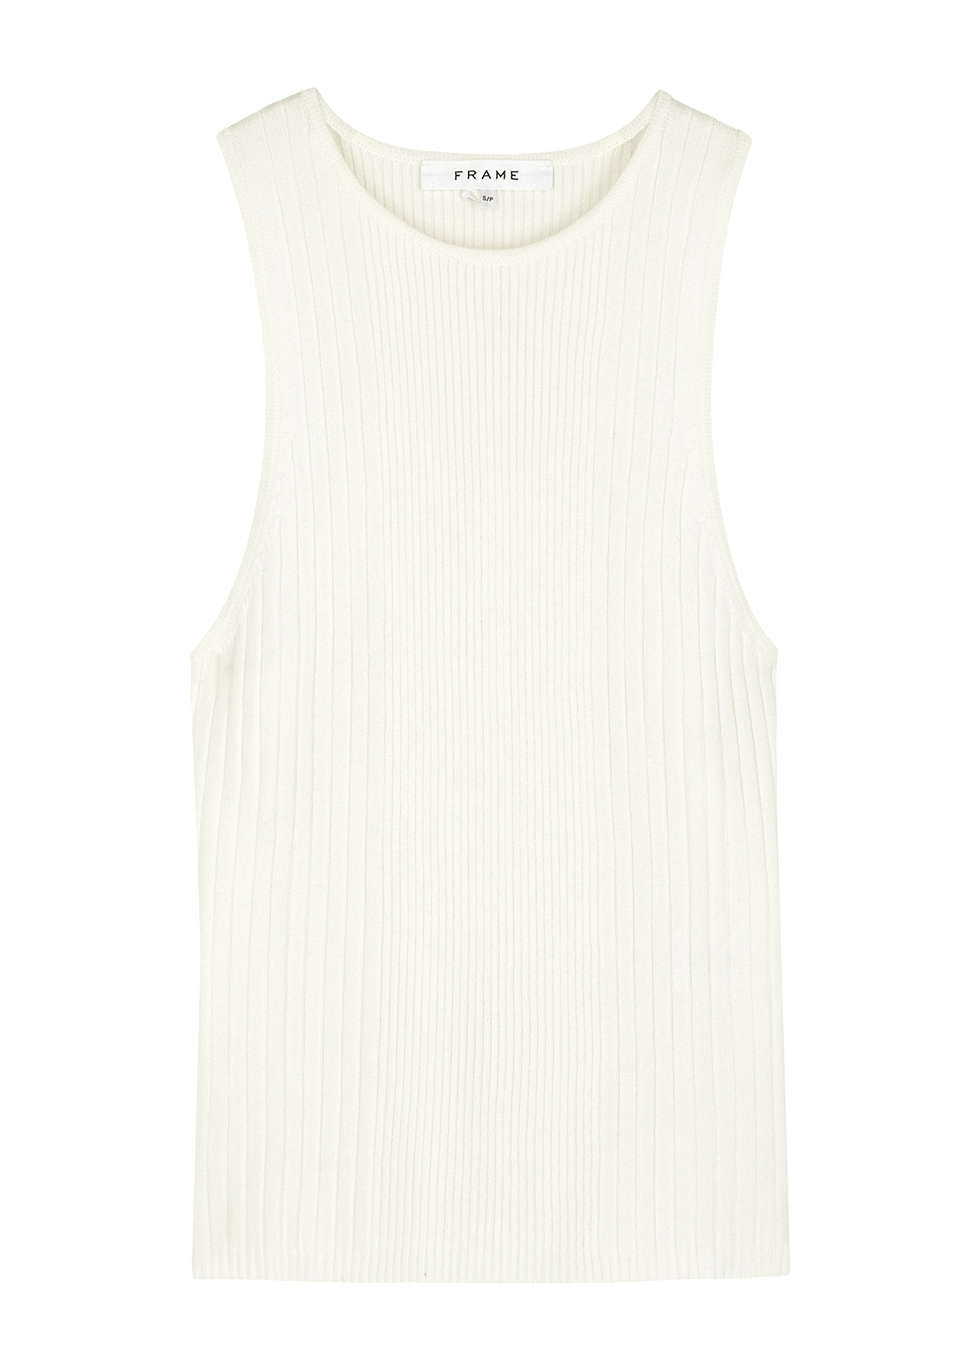 White ribbed jersey tank